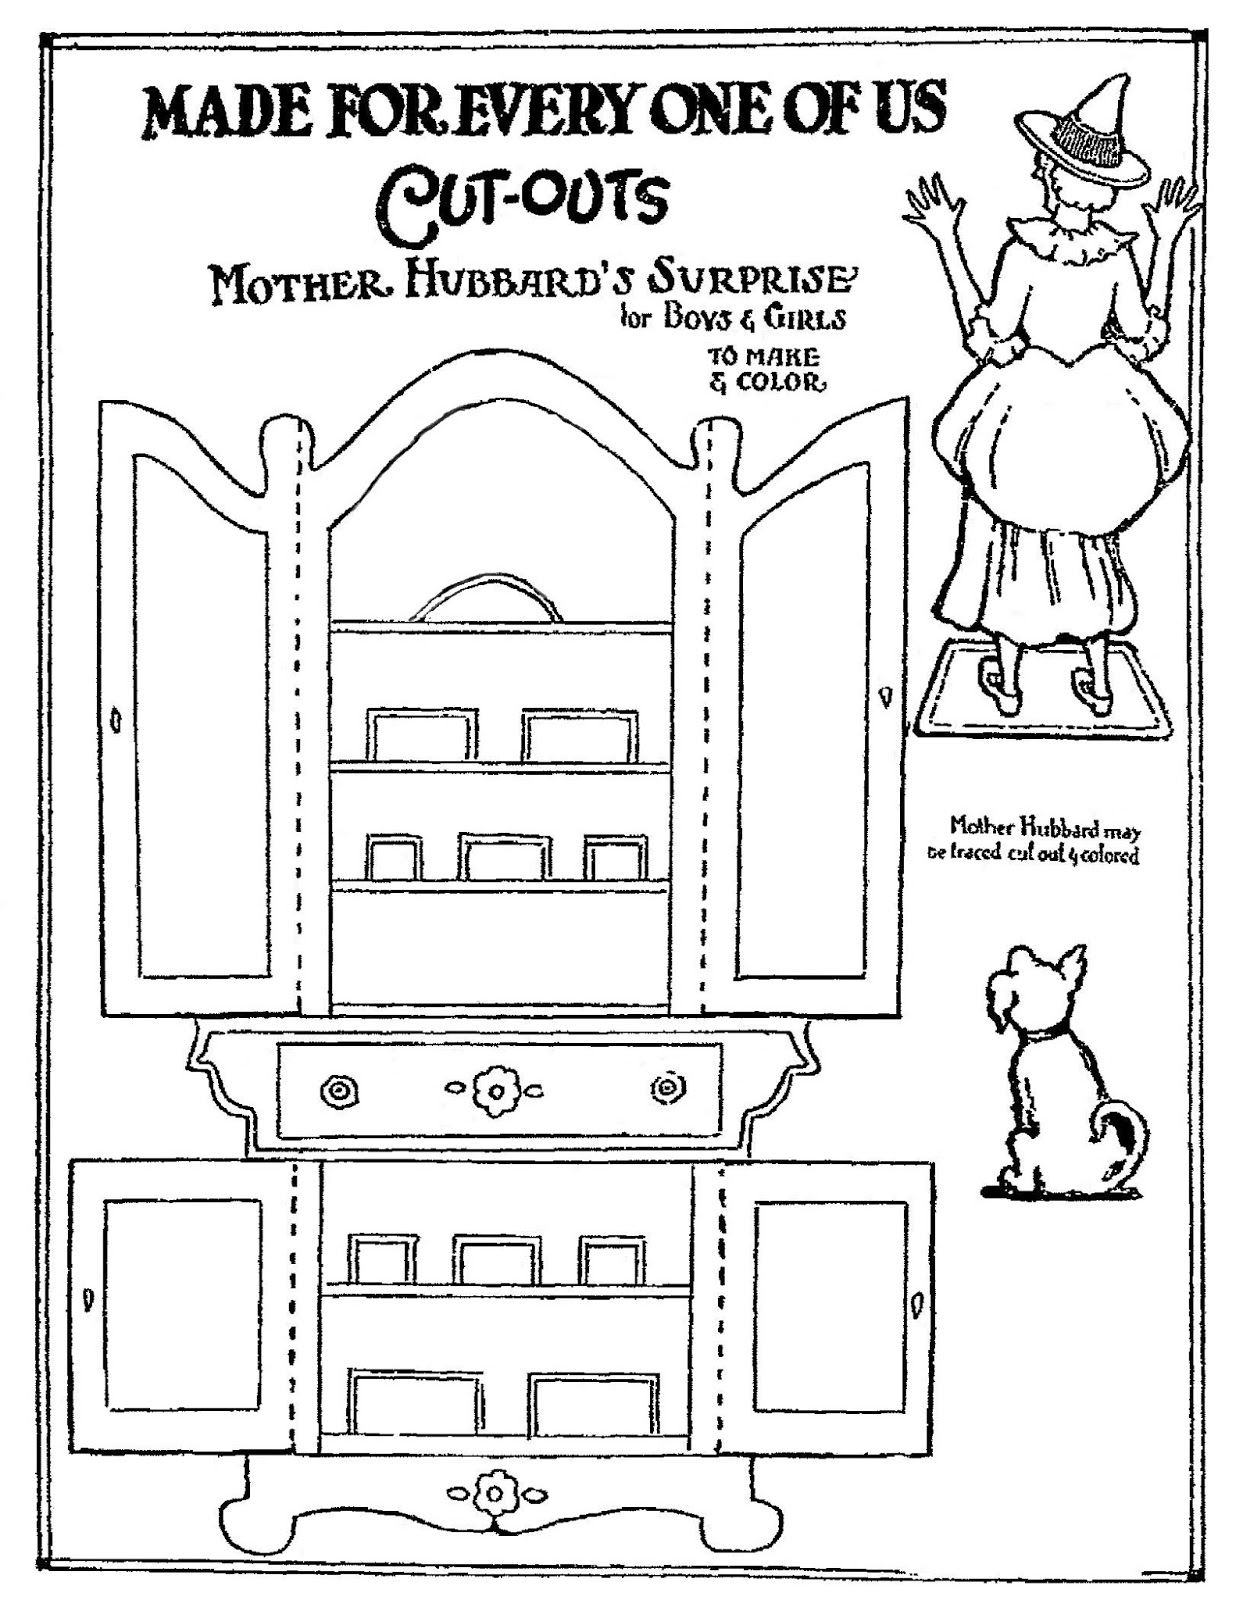 Boots And Her New 1966 Fashions Old Mother Hubbard Paper Dolls